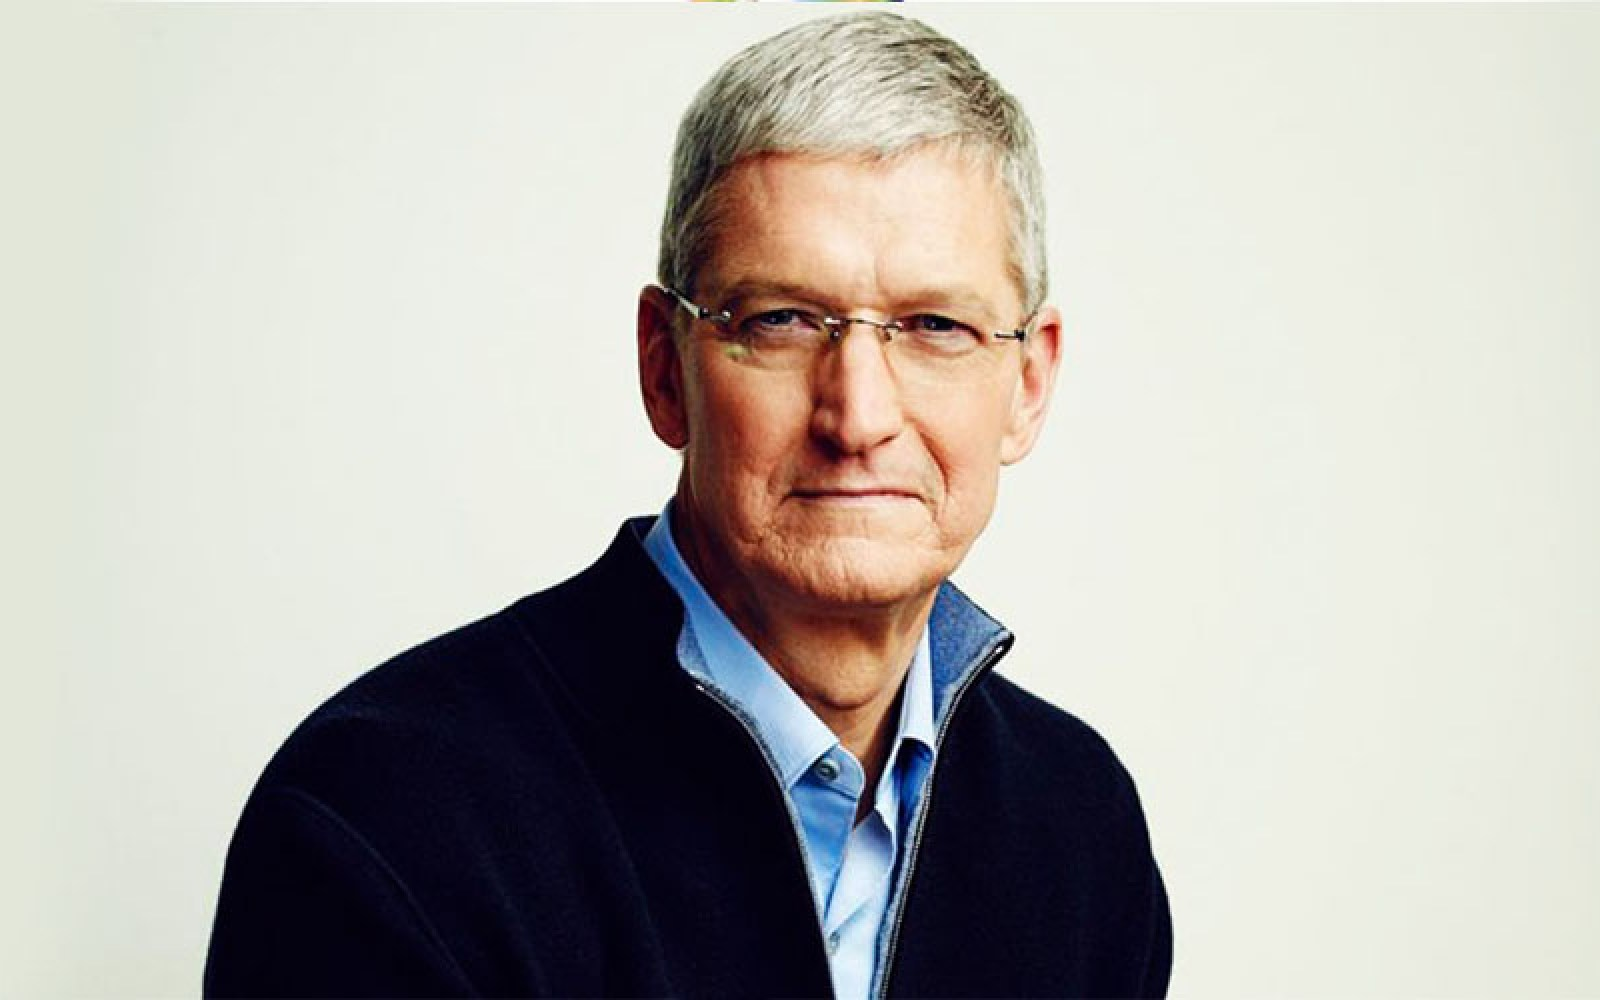 Apple CEO Tim Cook receiving Free Expression Award tomorrow night, event to be live streamed